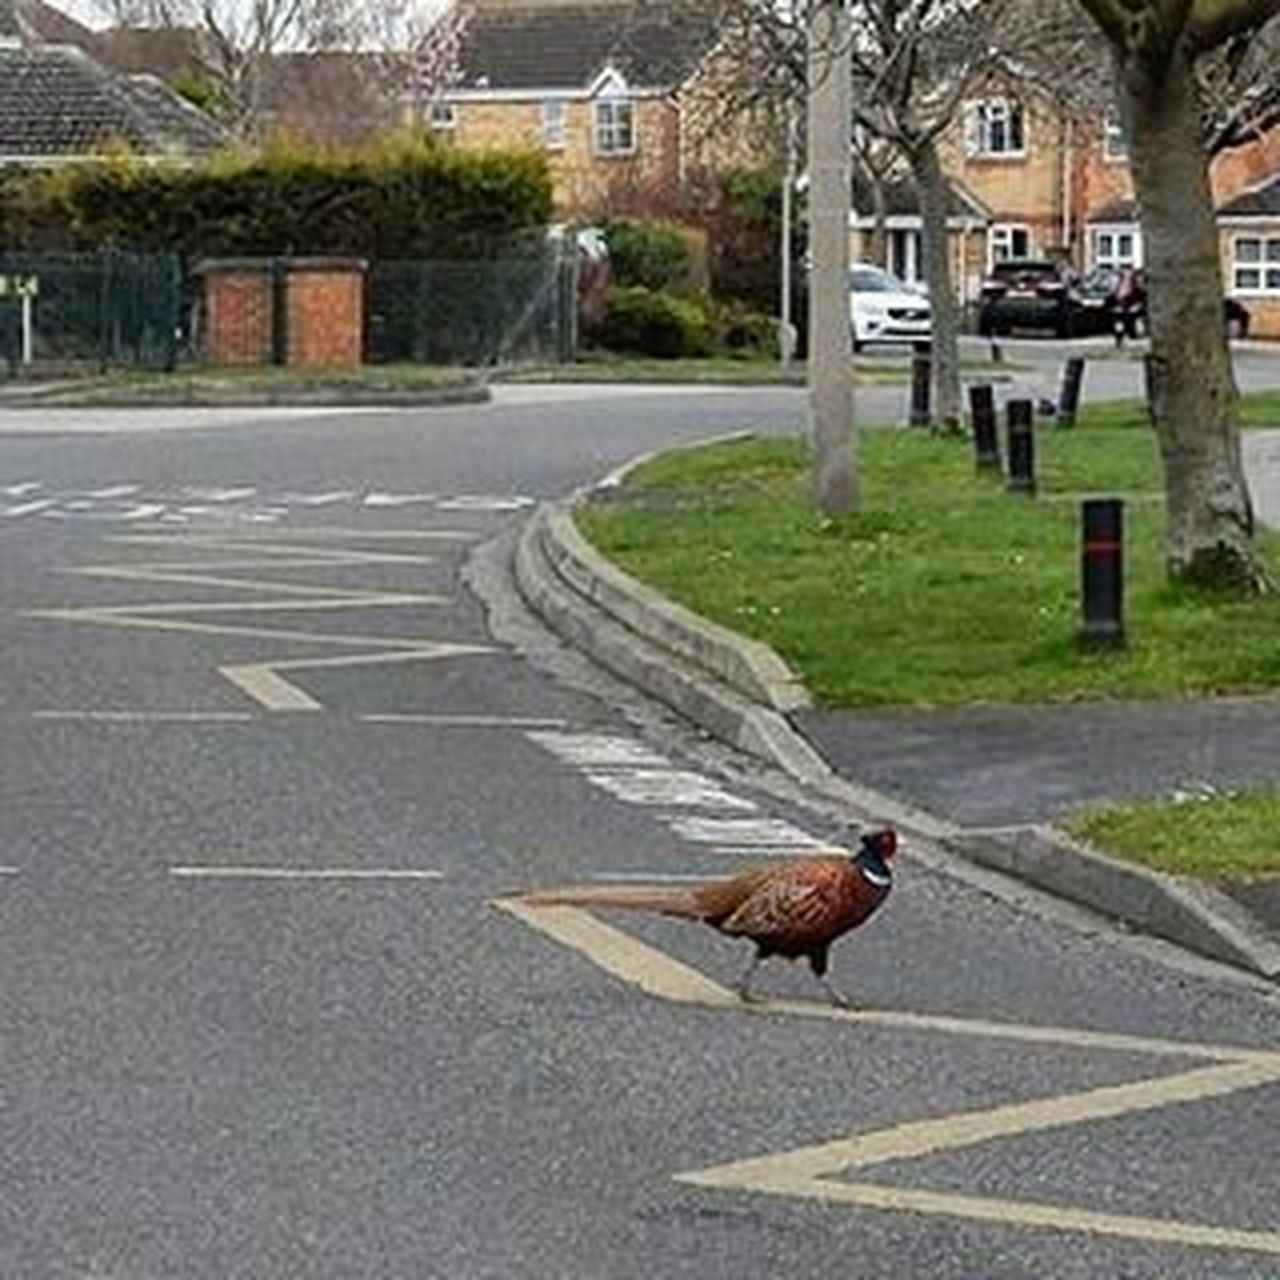 Pretty sure there should be a joke here somewhere! But that aside not what you expect to see on the urban part of your Cyclecommute home! www.facebook.com/melaniecycles Pheasant Schoolcrossing Cockpheasant Bird Sightsonabicycle Cycling Cycle Biketowork Commutebybike Cyclelikeagirl Cyclephotography Urbanphotography Animals Lincoln Lincolnshire Nikon_photography Nikons9900 Nikon